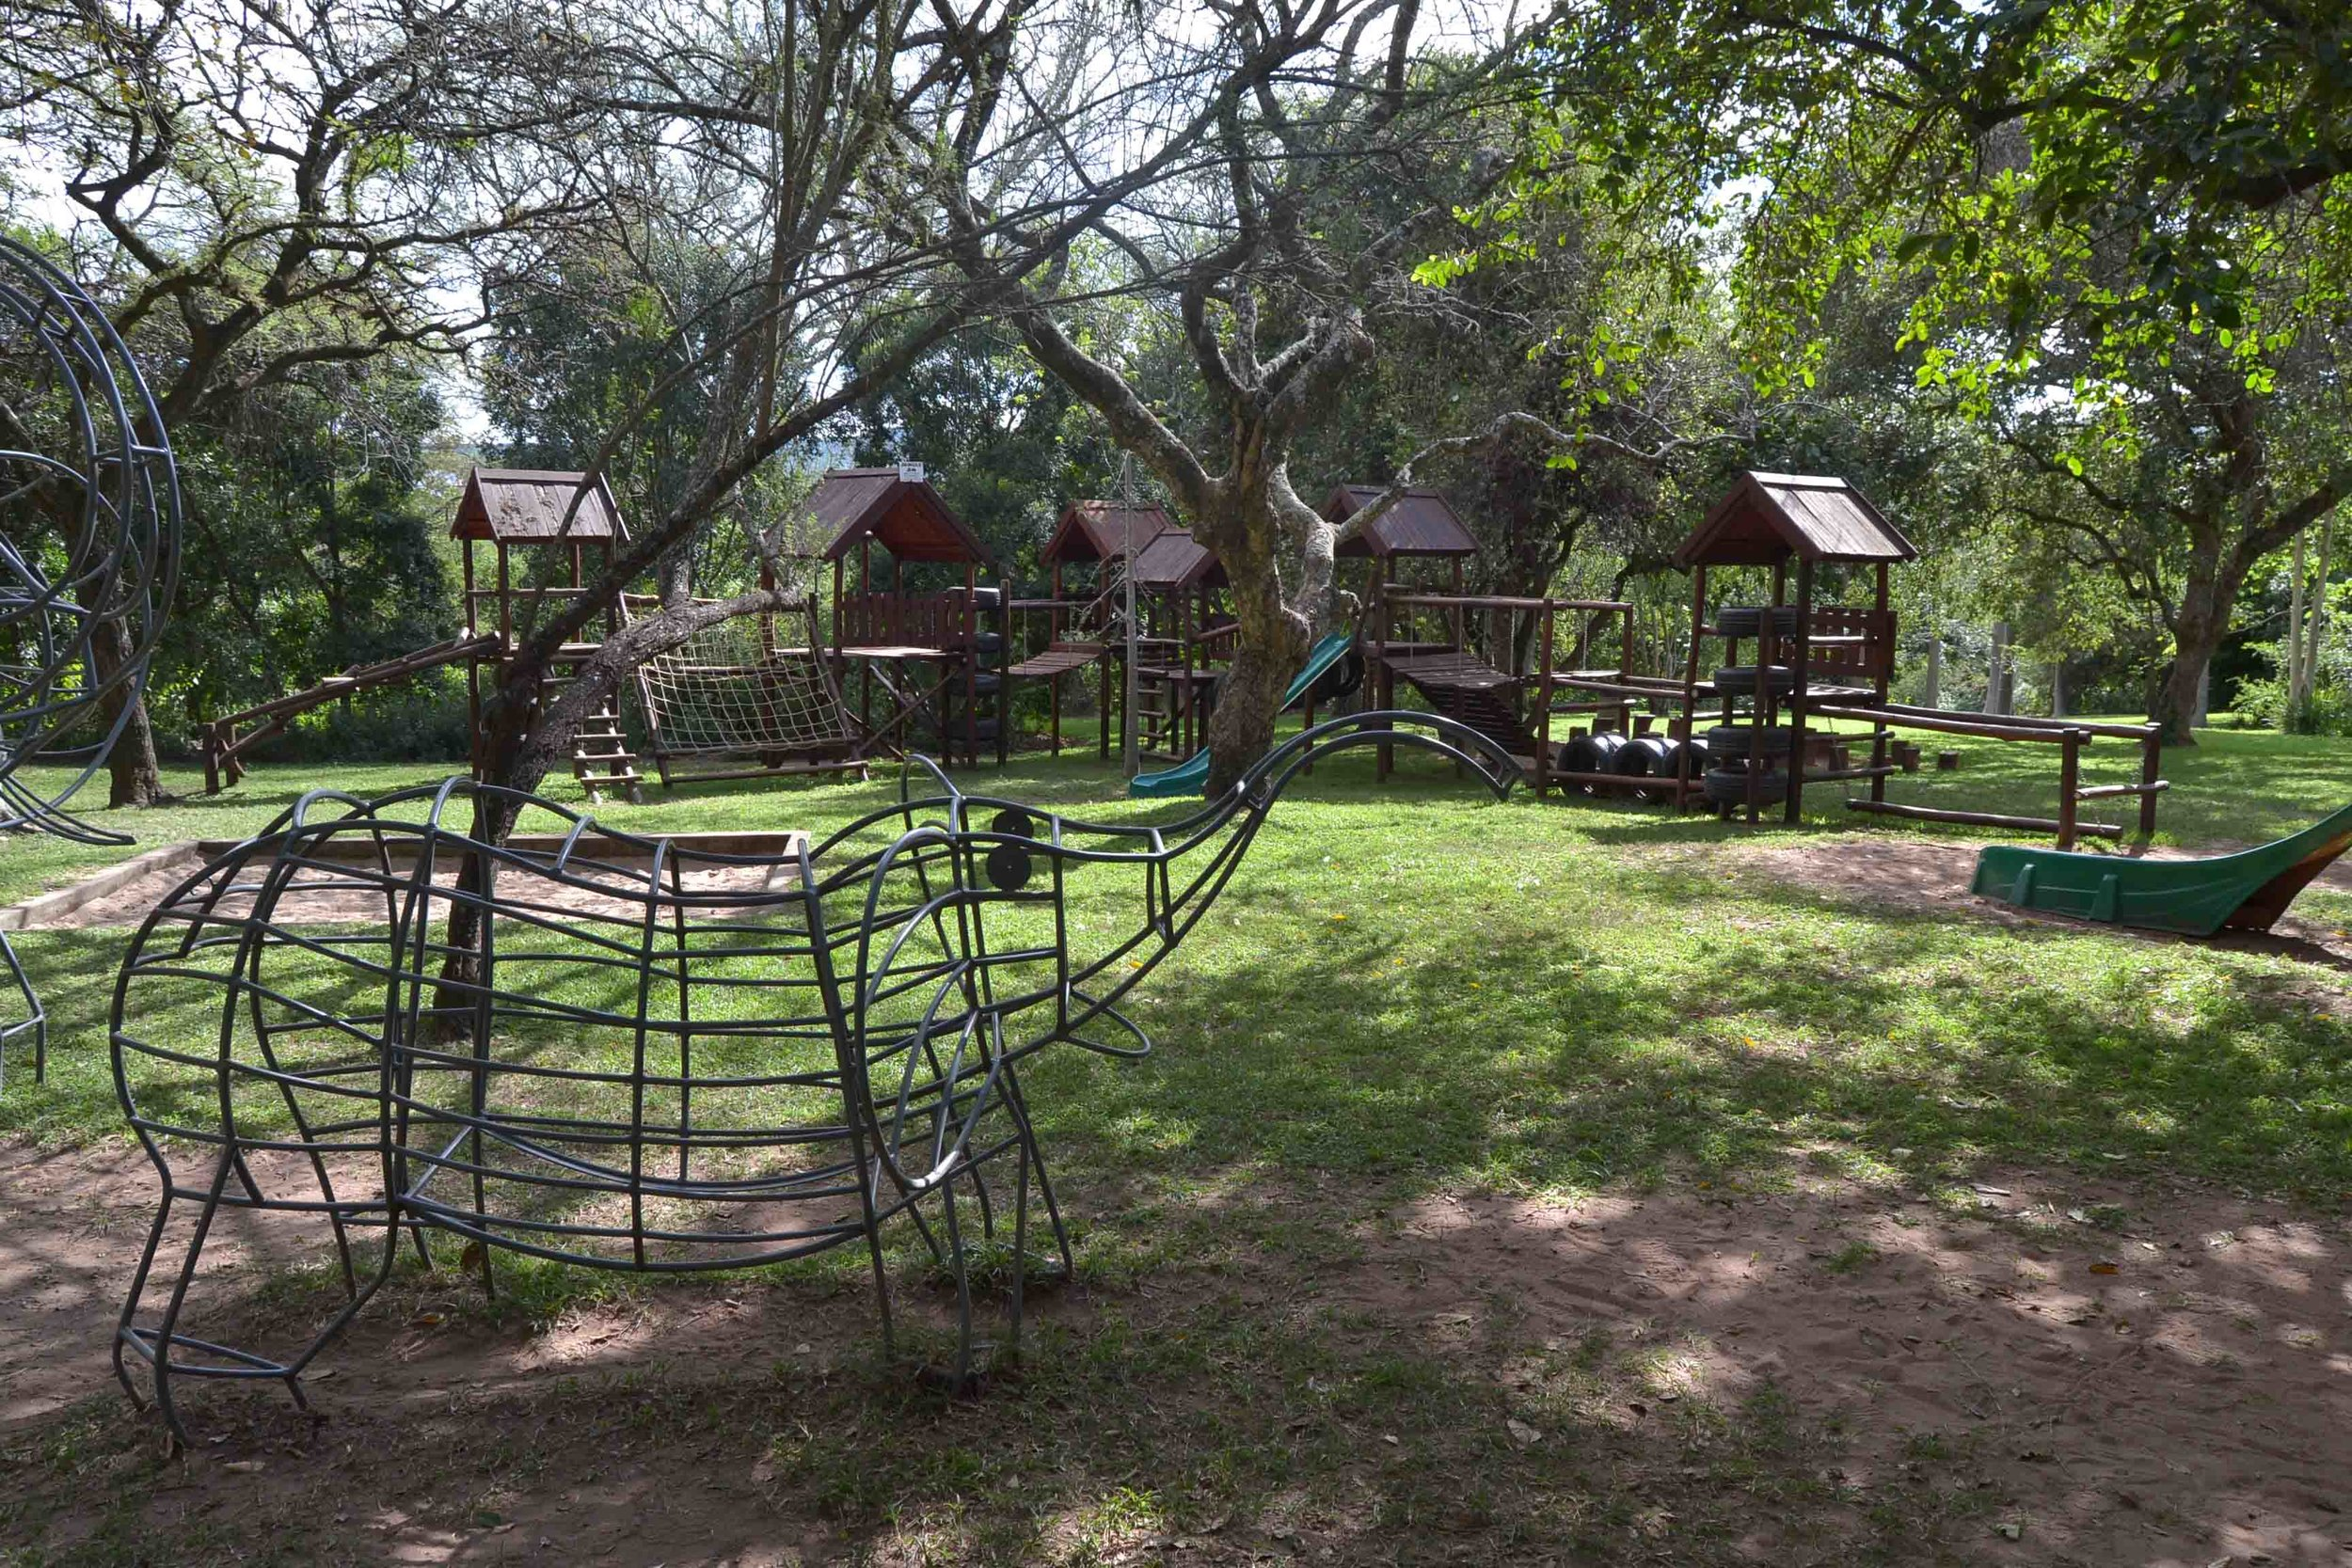 Playground at the Lowveld Botanical Gardens, near the Tea Garden